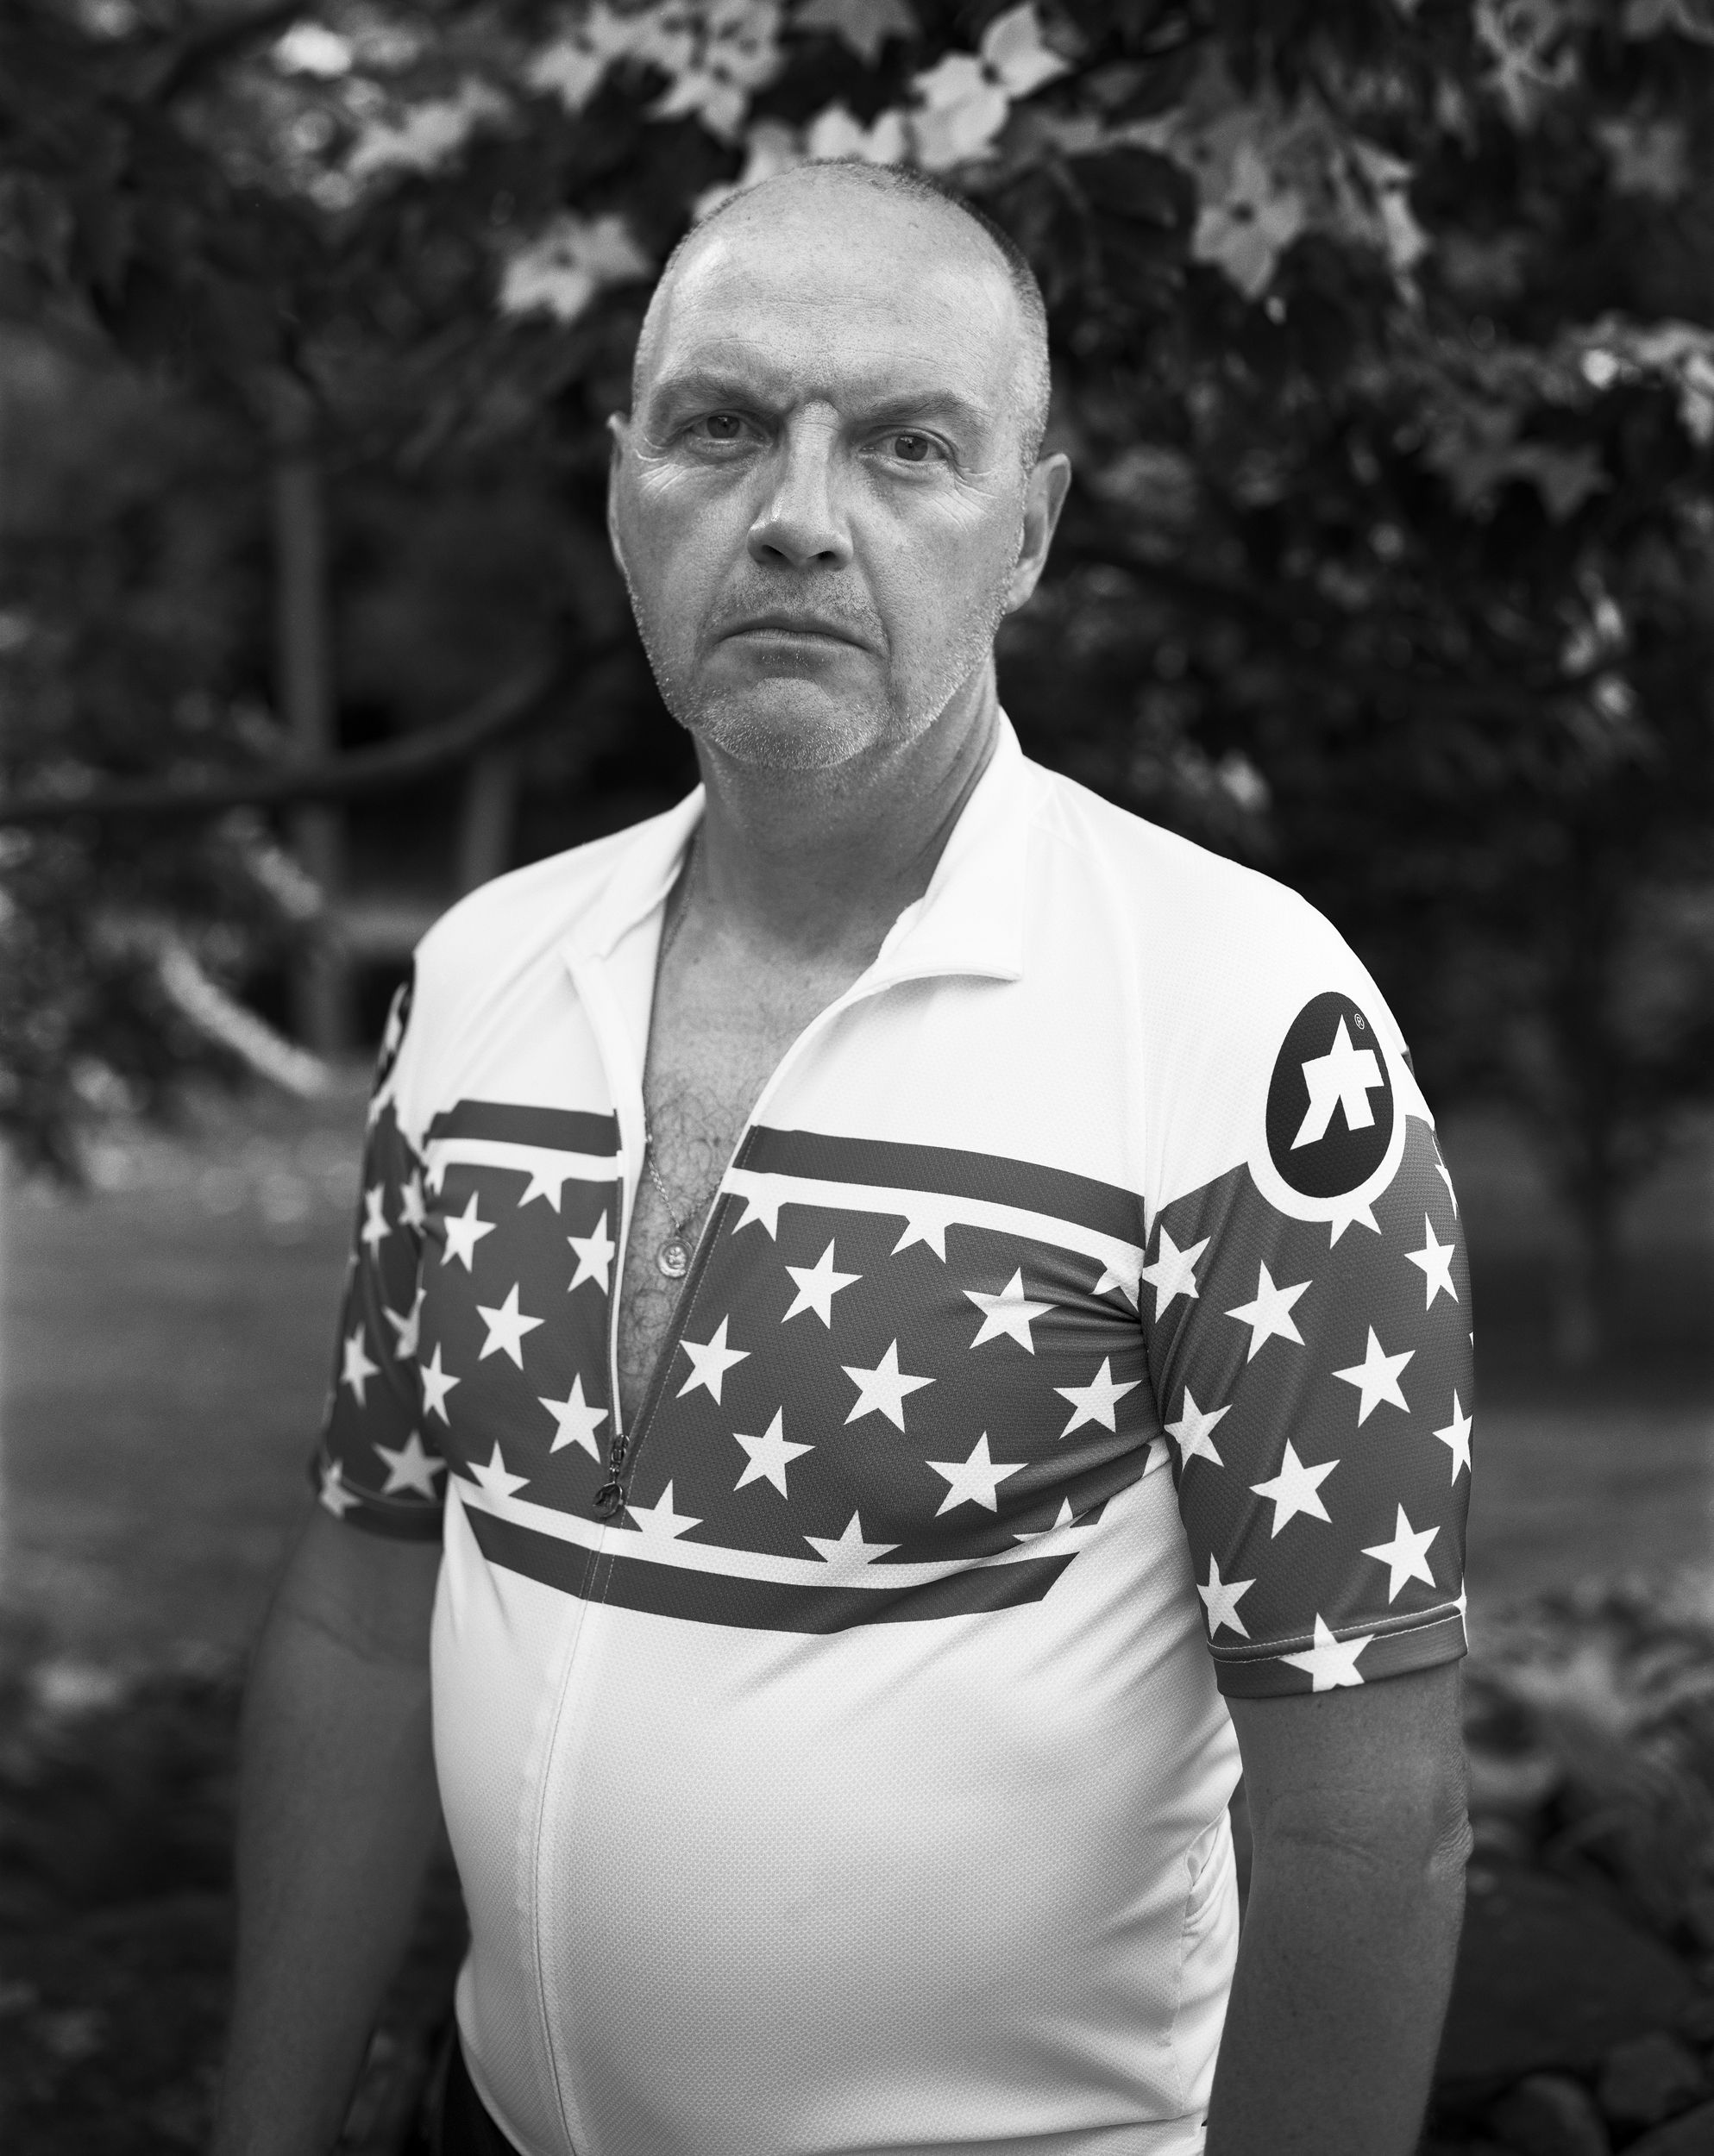 Me after a training ride. No one told me to smile or suck in my gut.